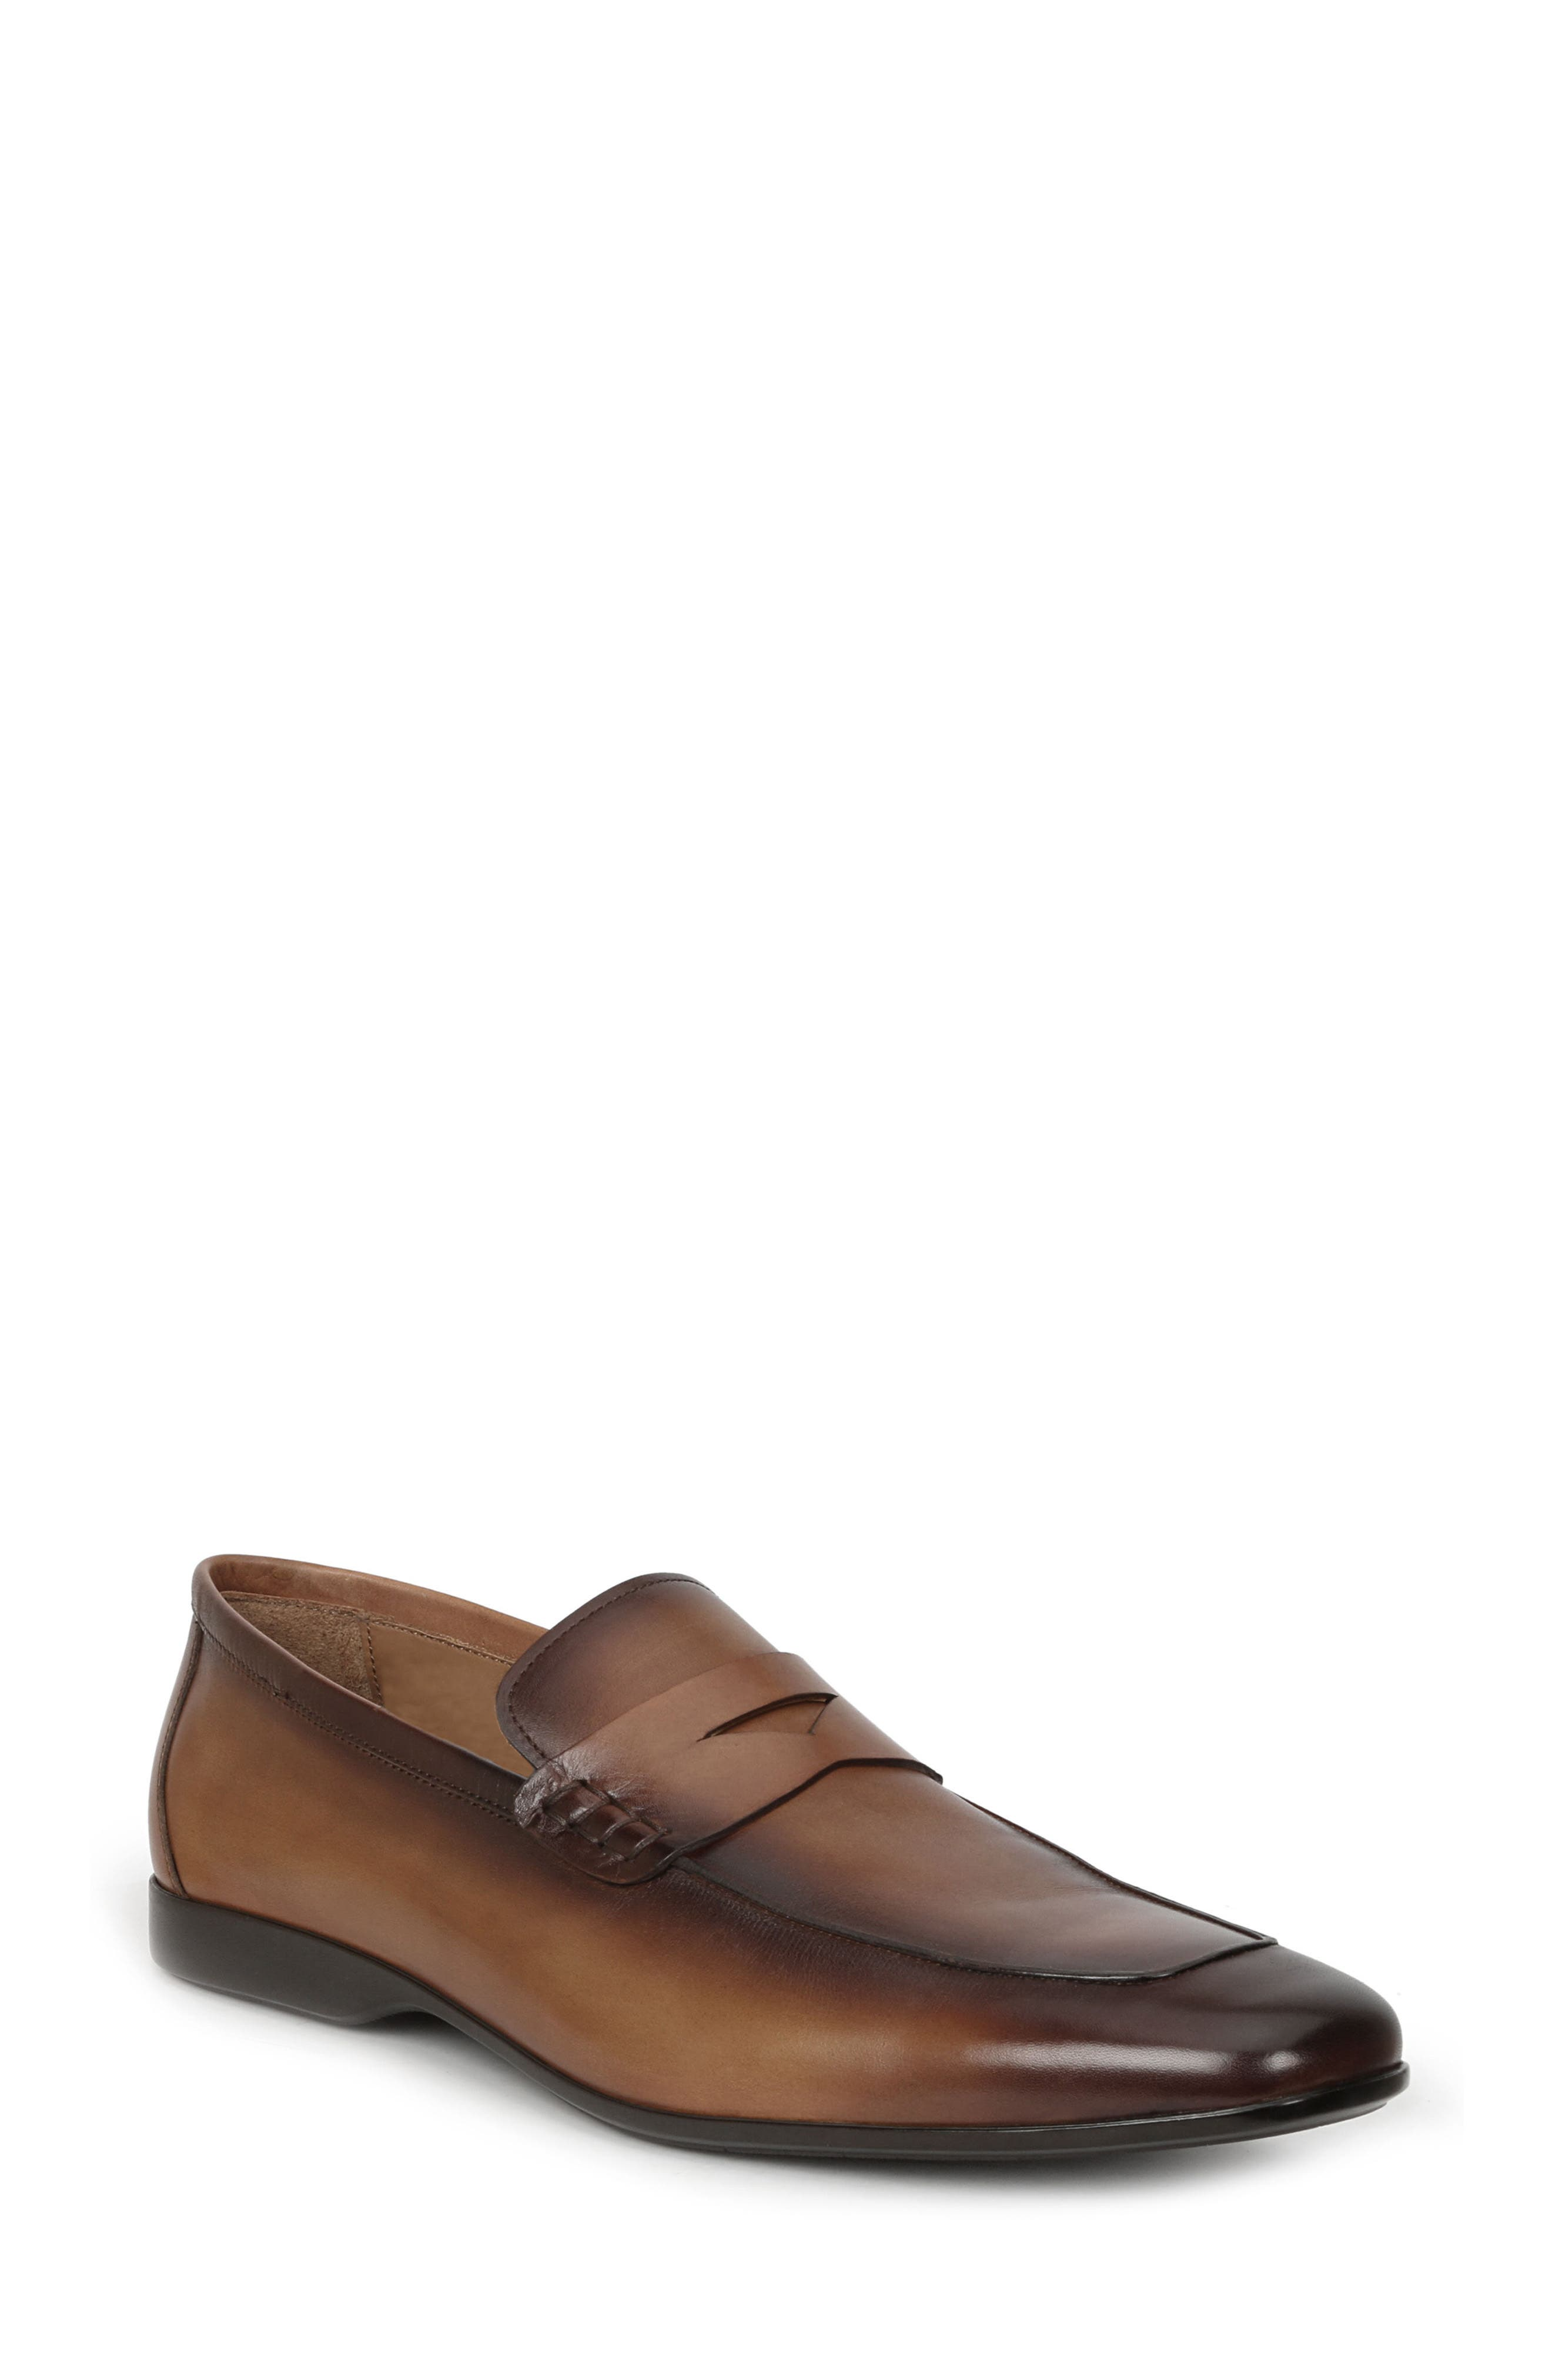 Margot Penny Loafer,                             Main thumbnail 1, color,                             Cognac